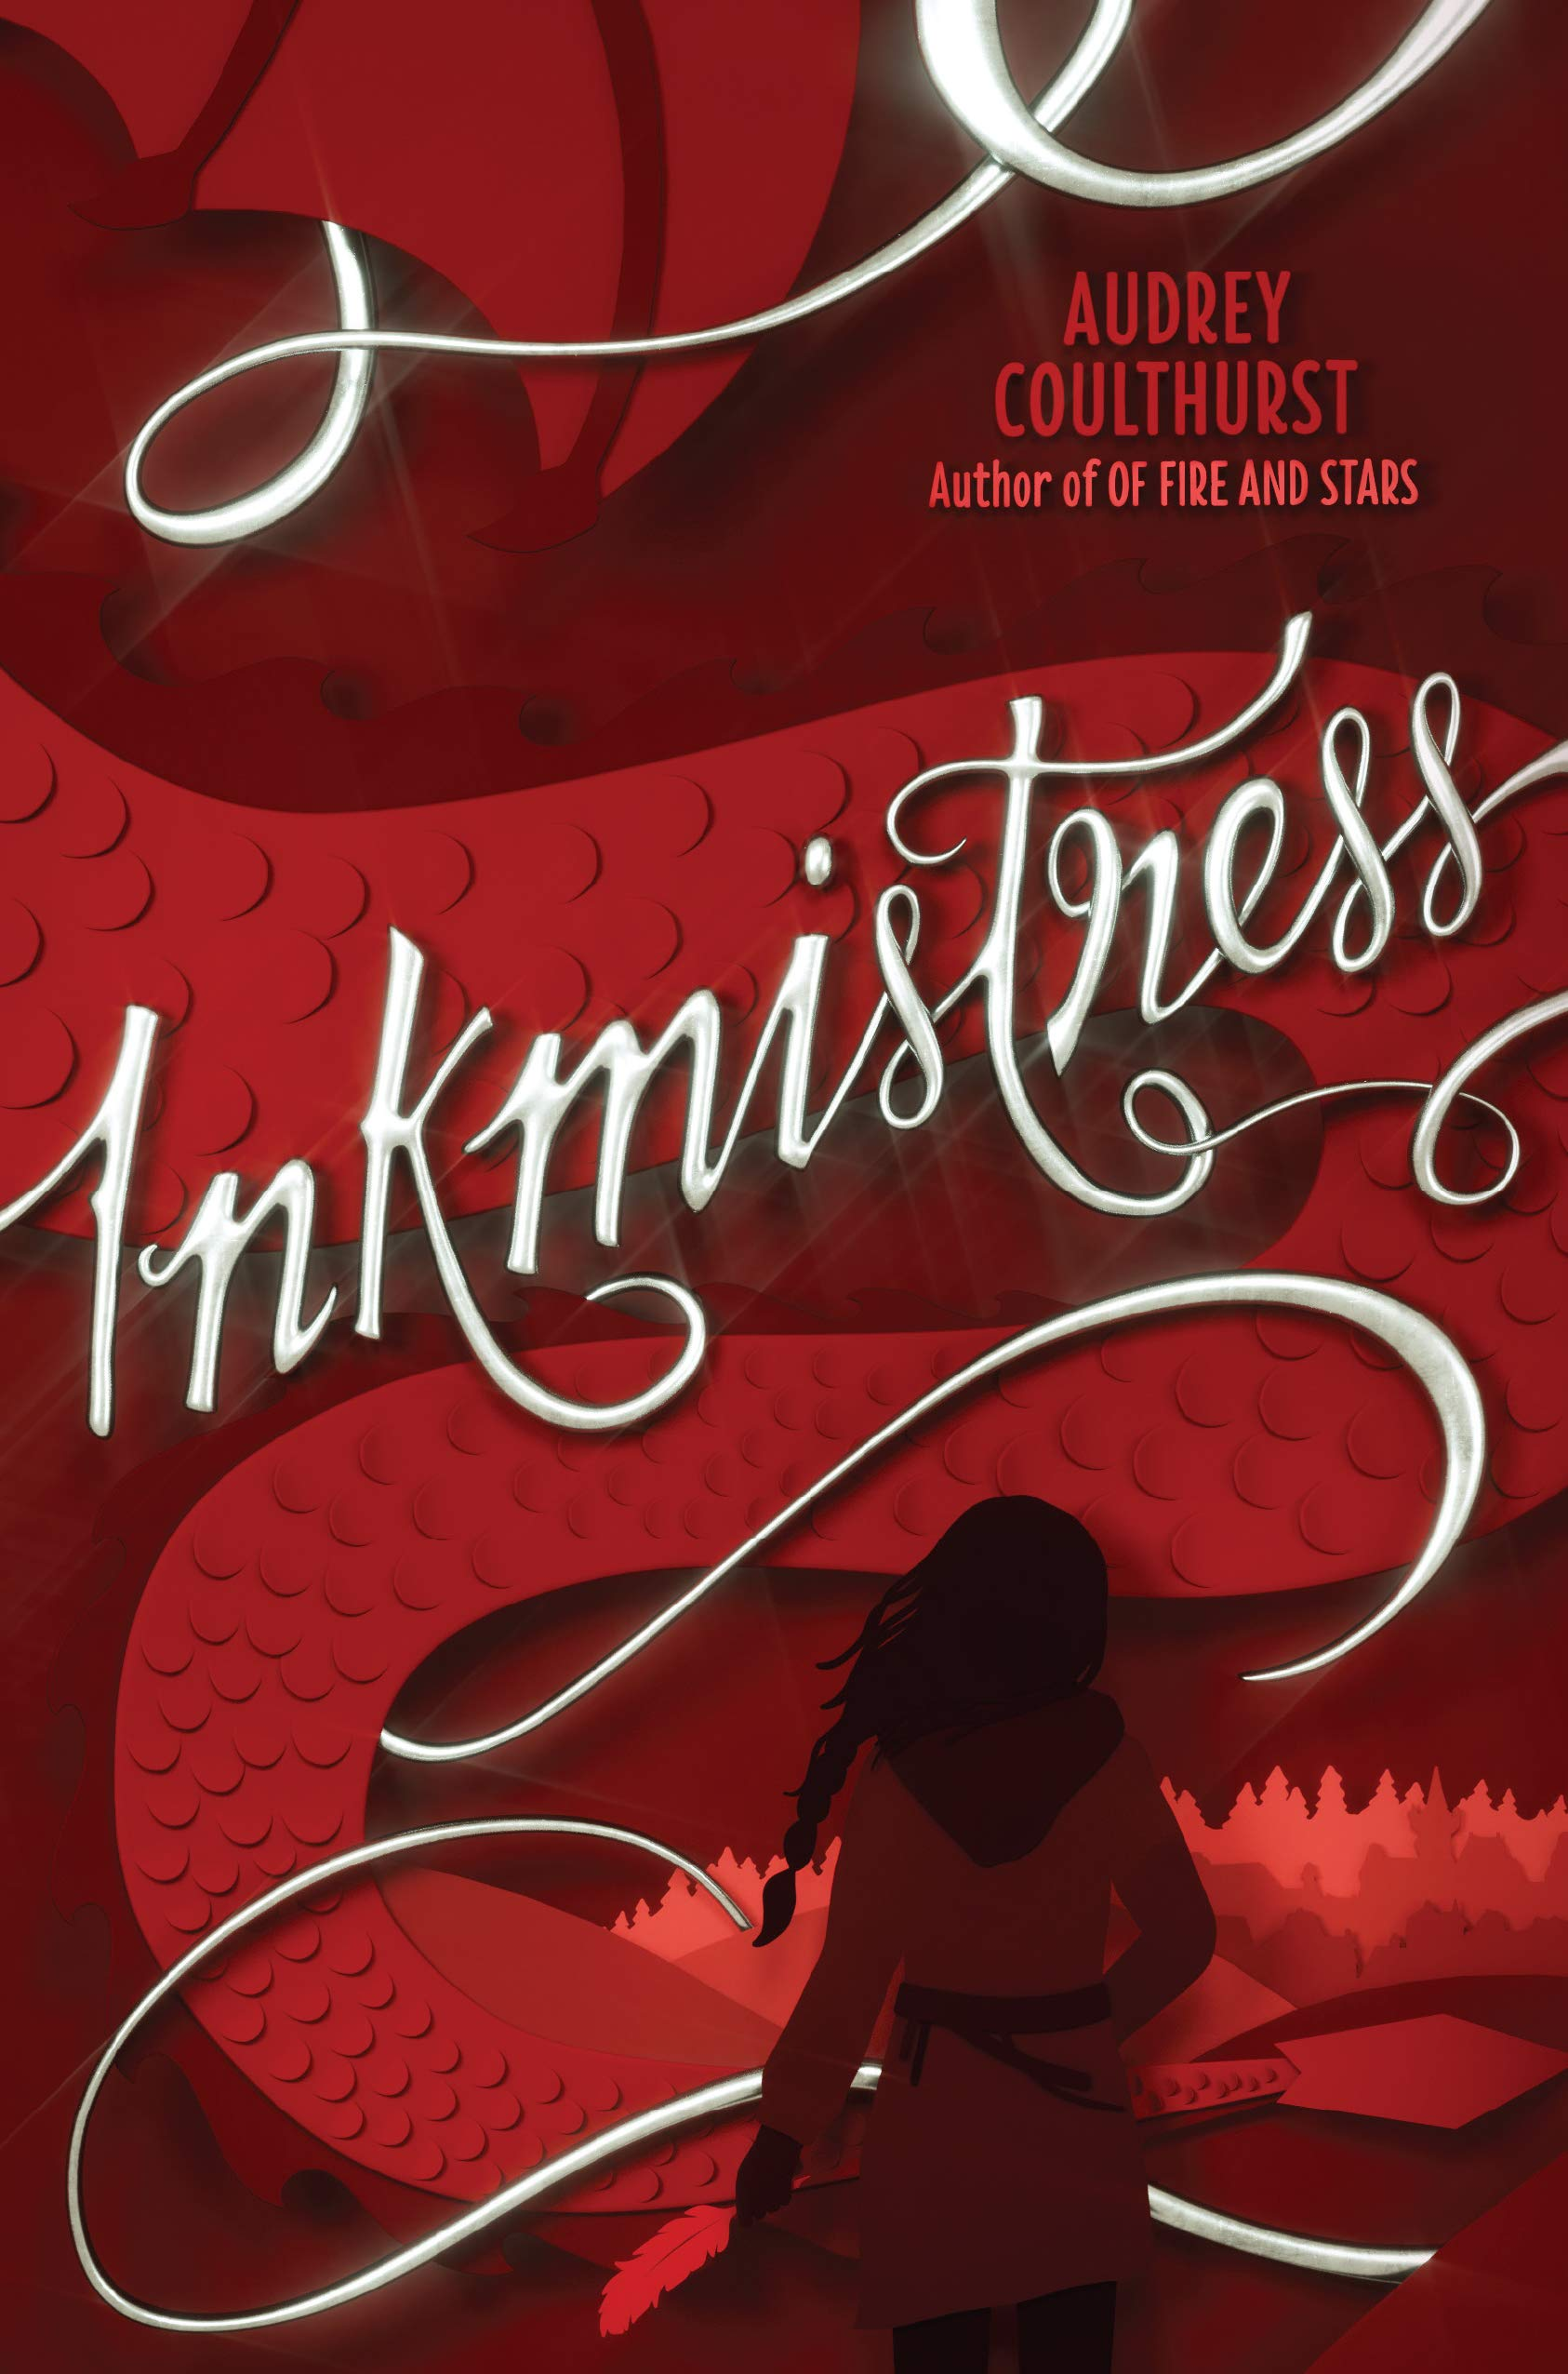 Amazon.com: Inkmistress (9780062433282): Coulthurst, Audrey: Books